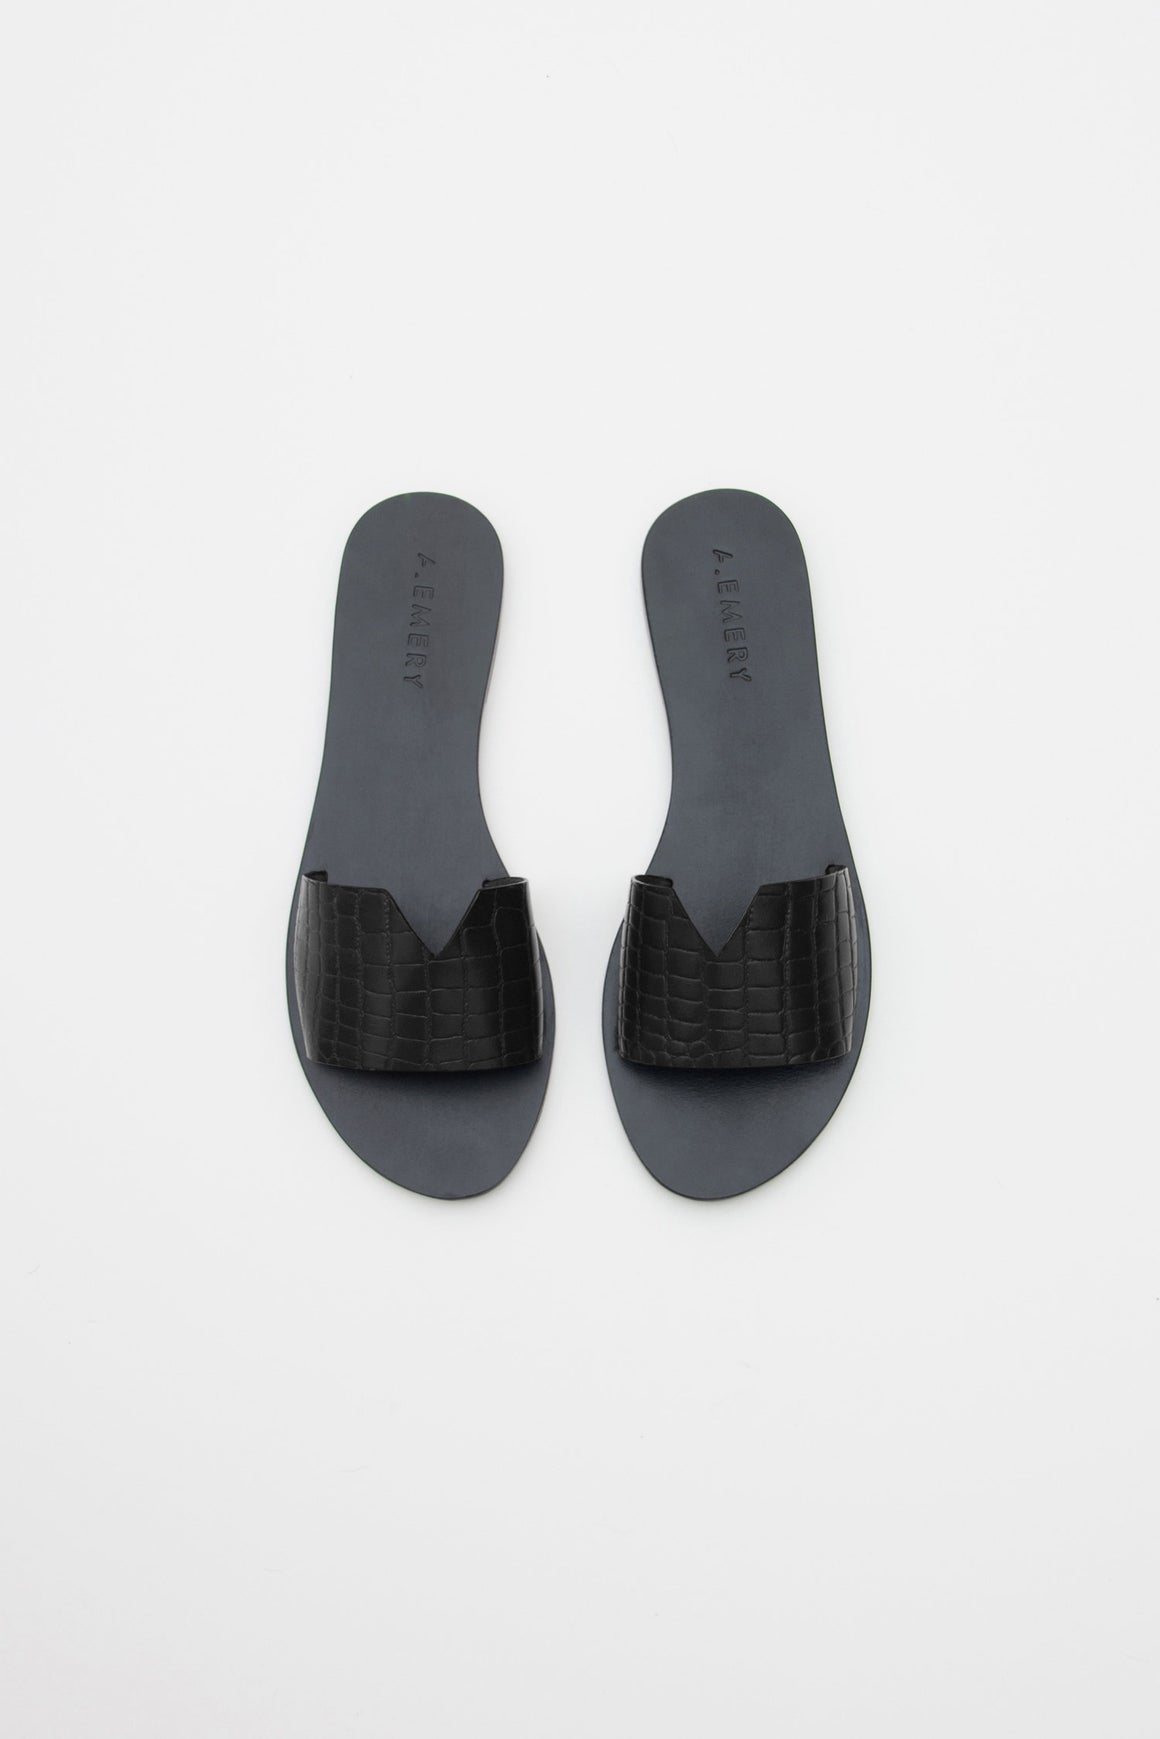 JASPER is an impossibly easy and chic slide. Made from our croc embossed leather with cut V detail. Pair with jeans and a t-shirt or as part of your vacation wardrobe.Ê